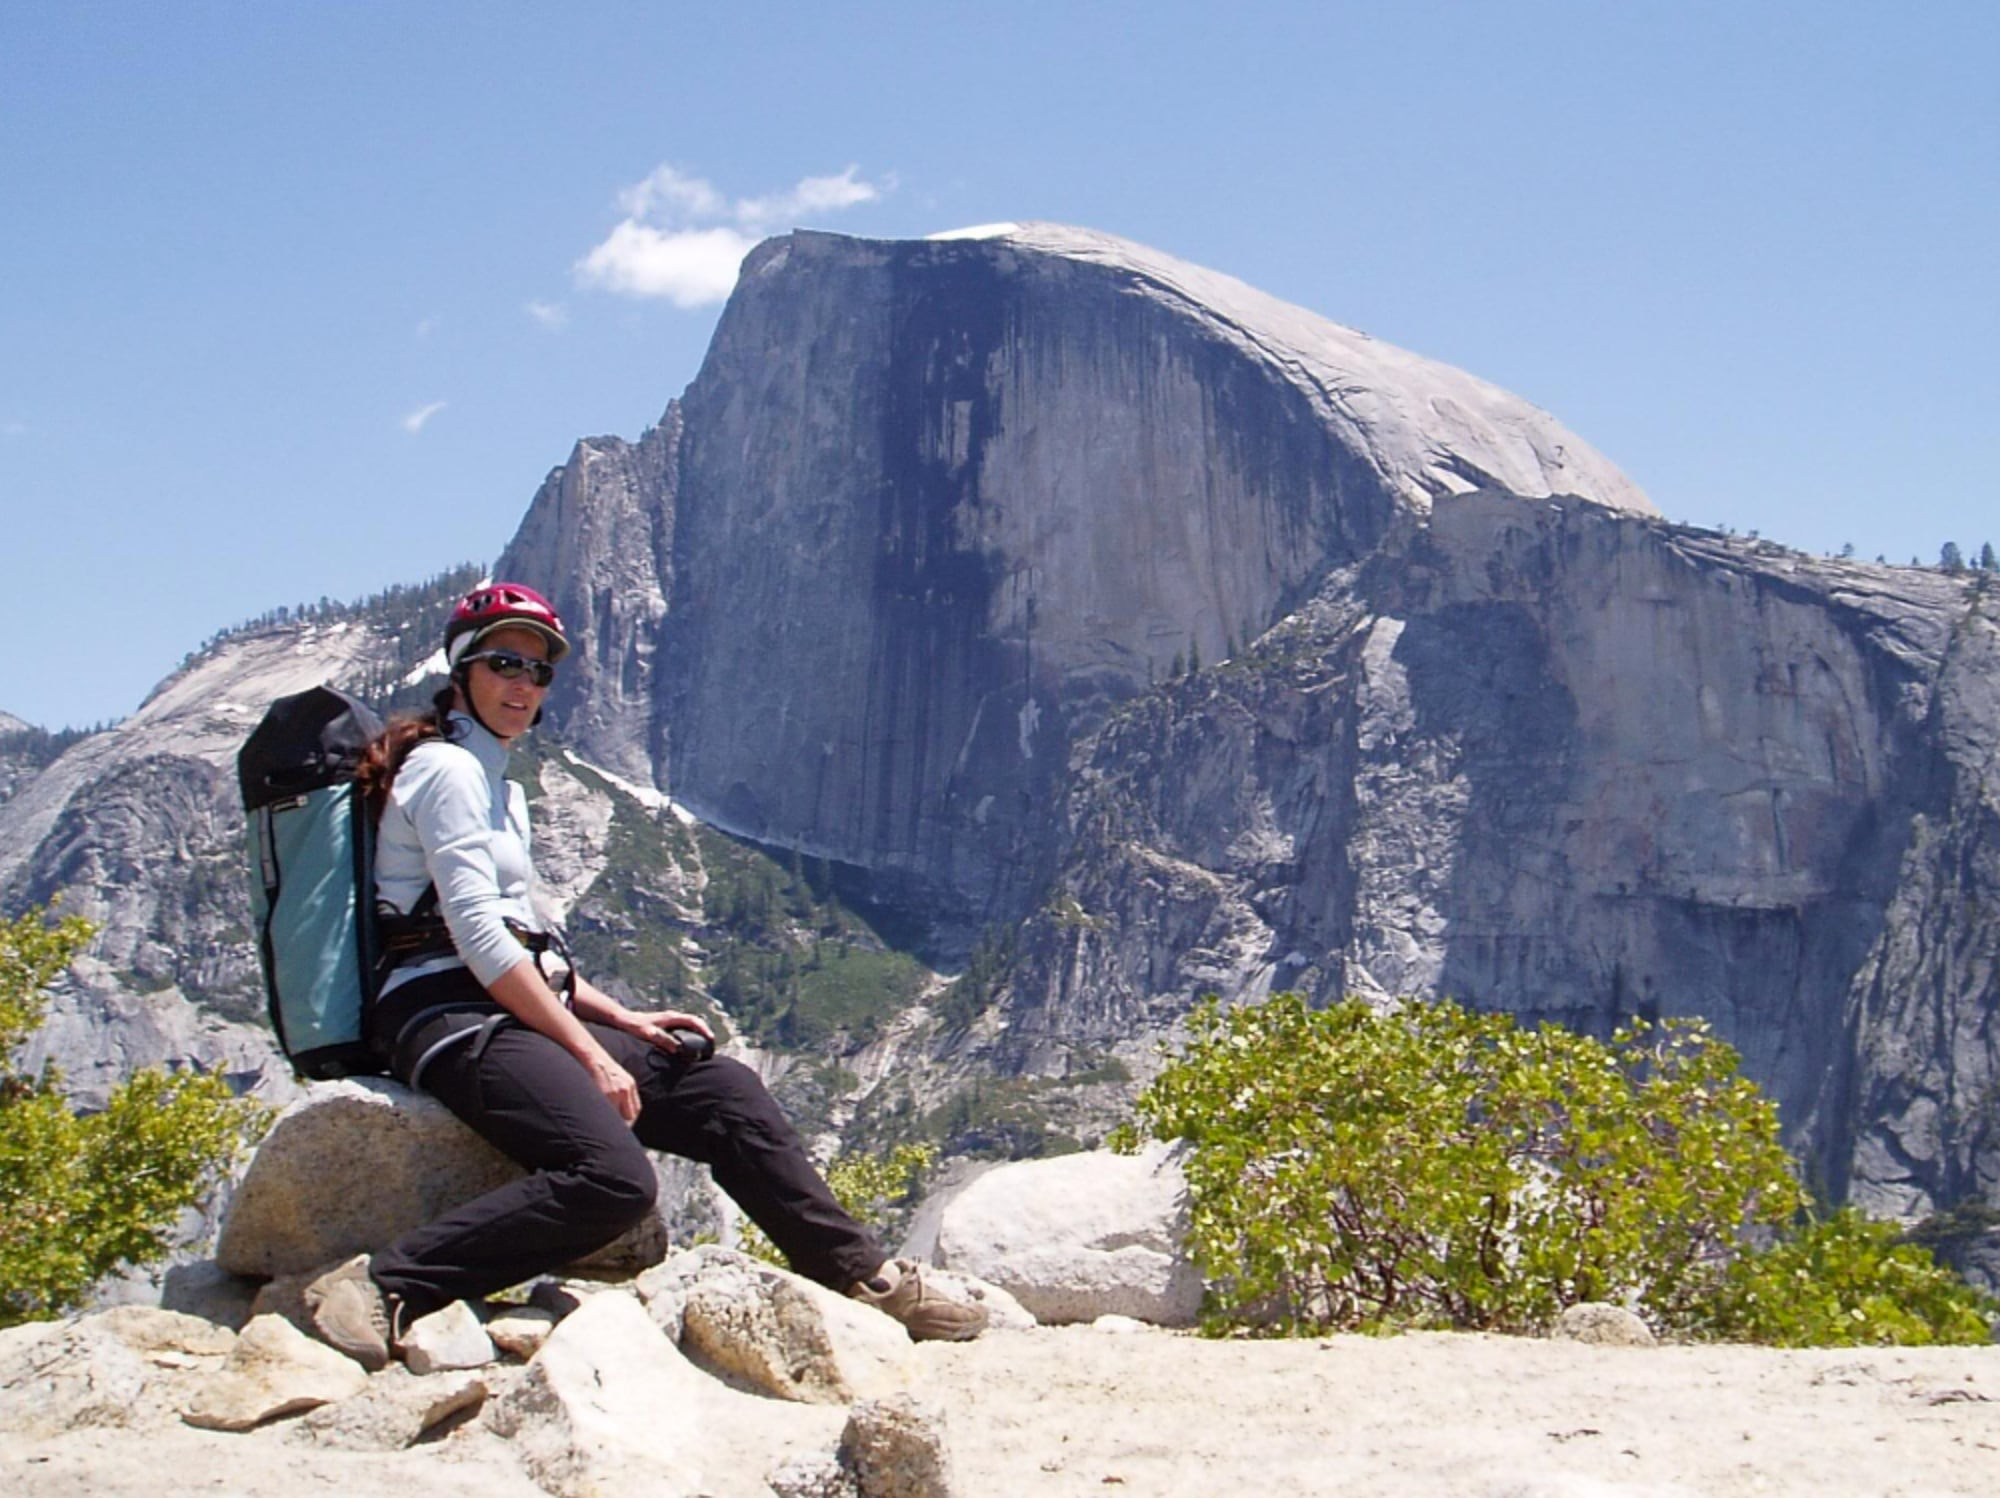 Cathy in Yosemite